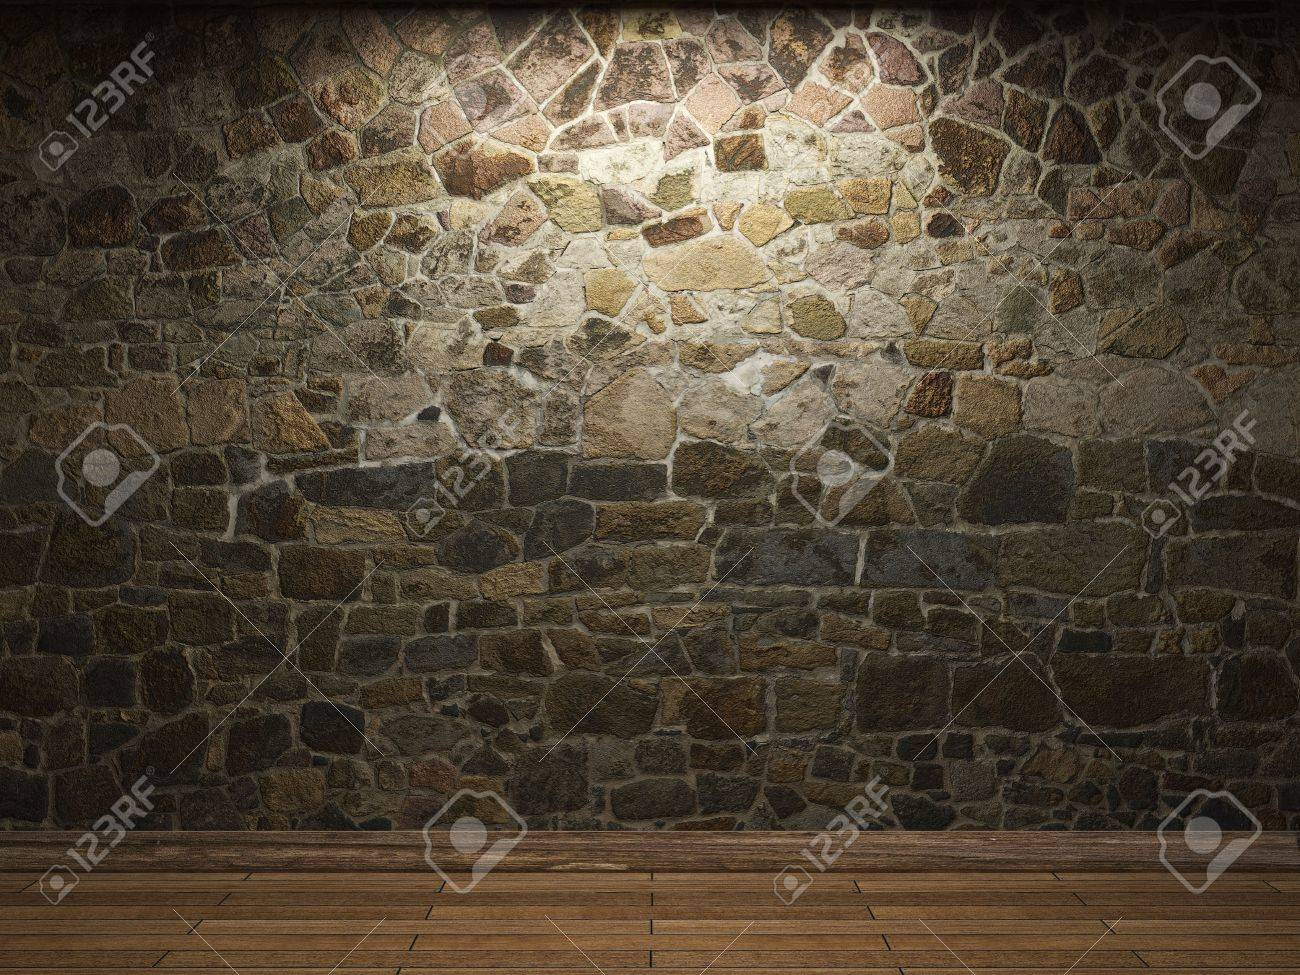 castle interior images & stock pictures. royalty free castle